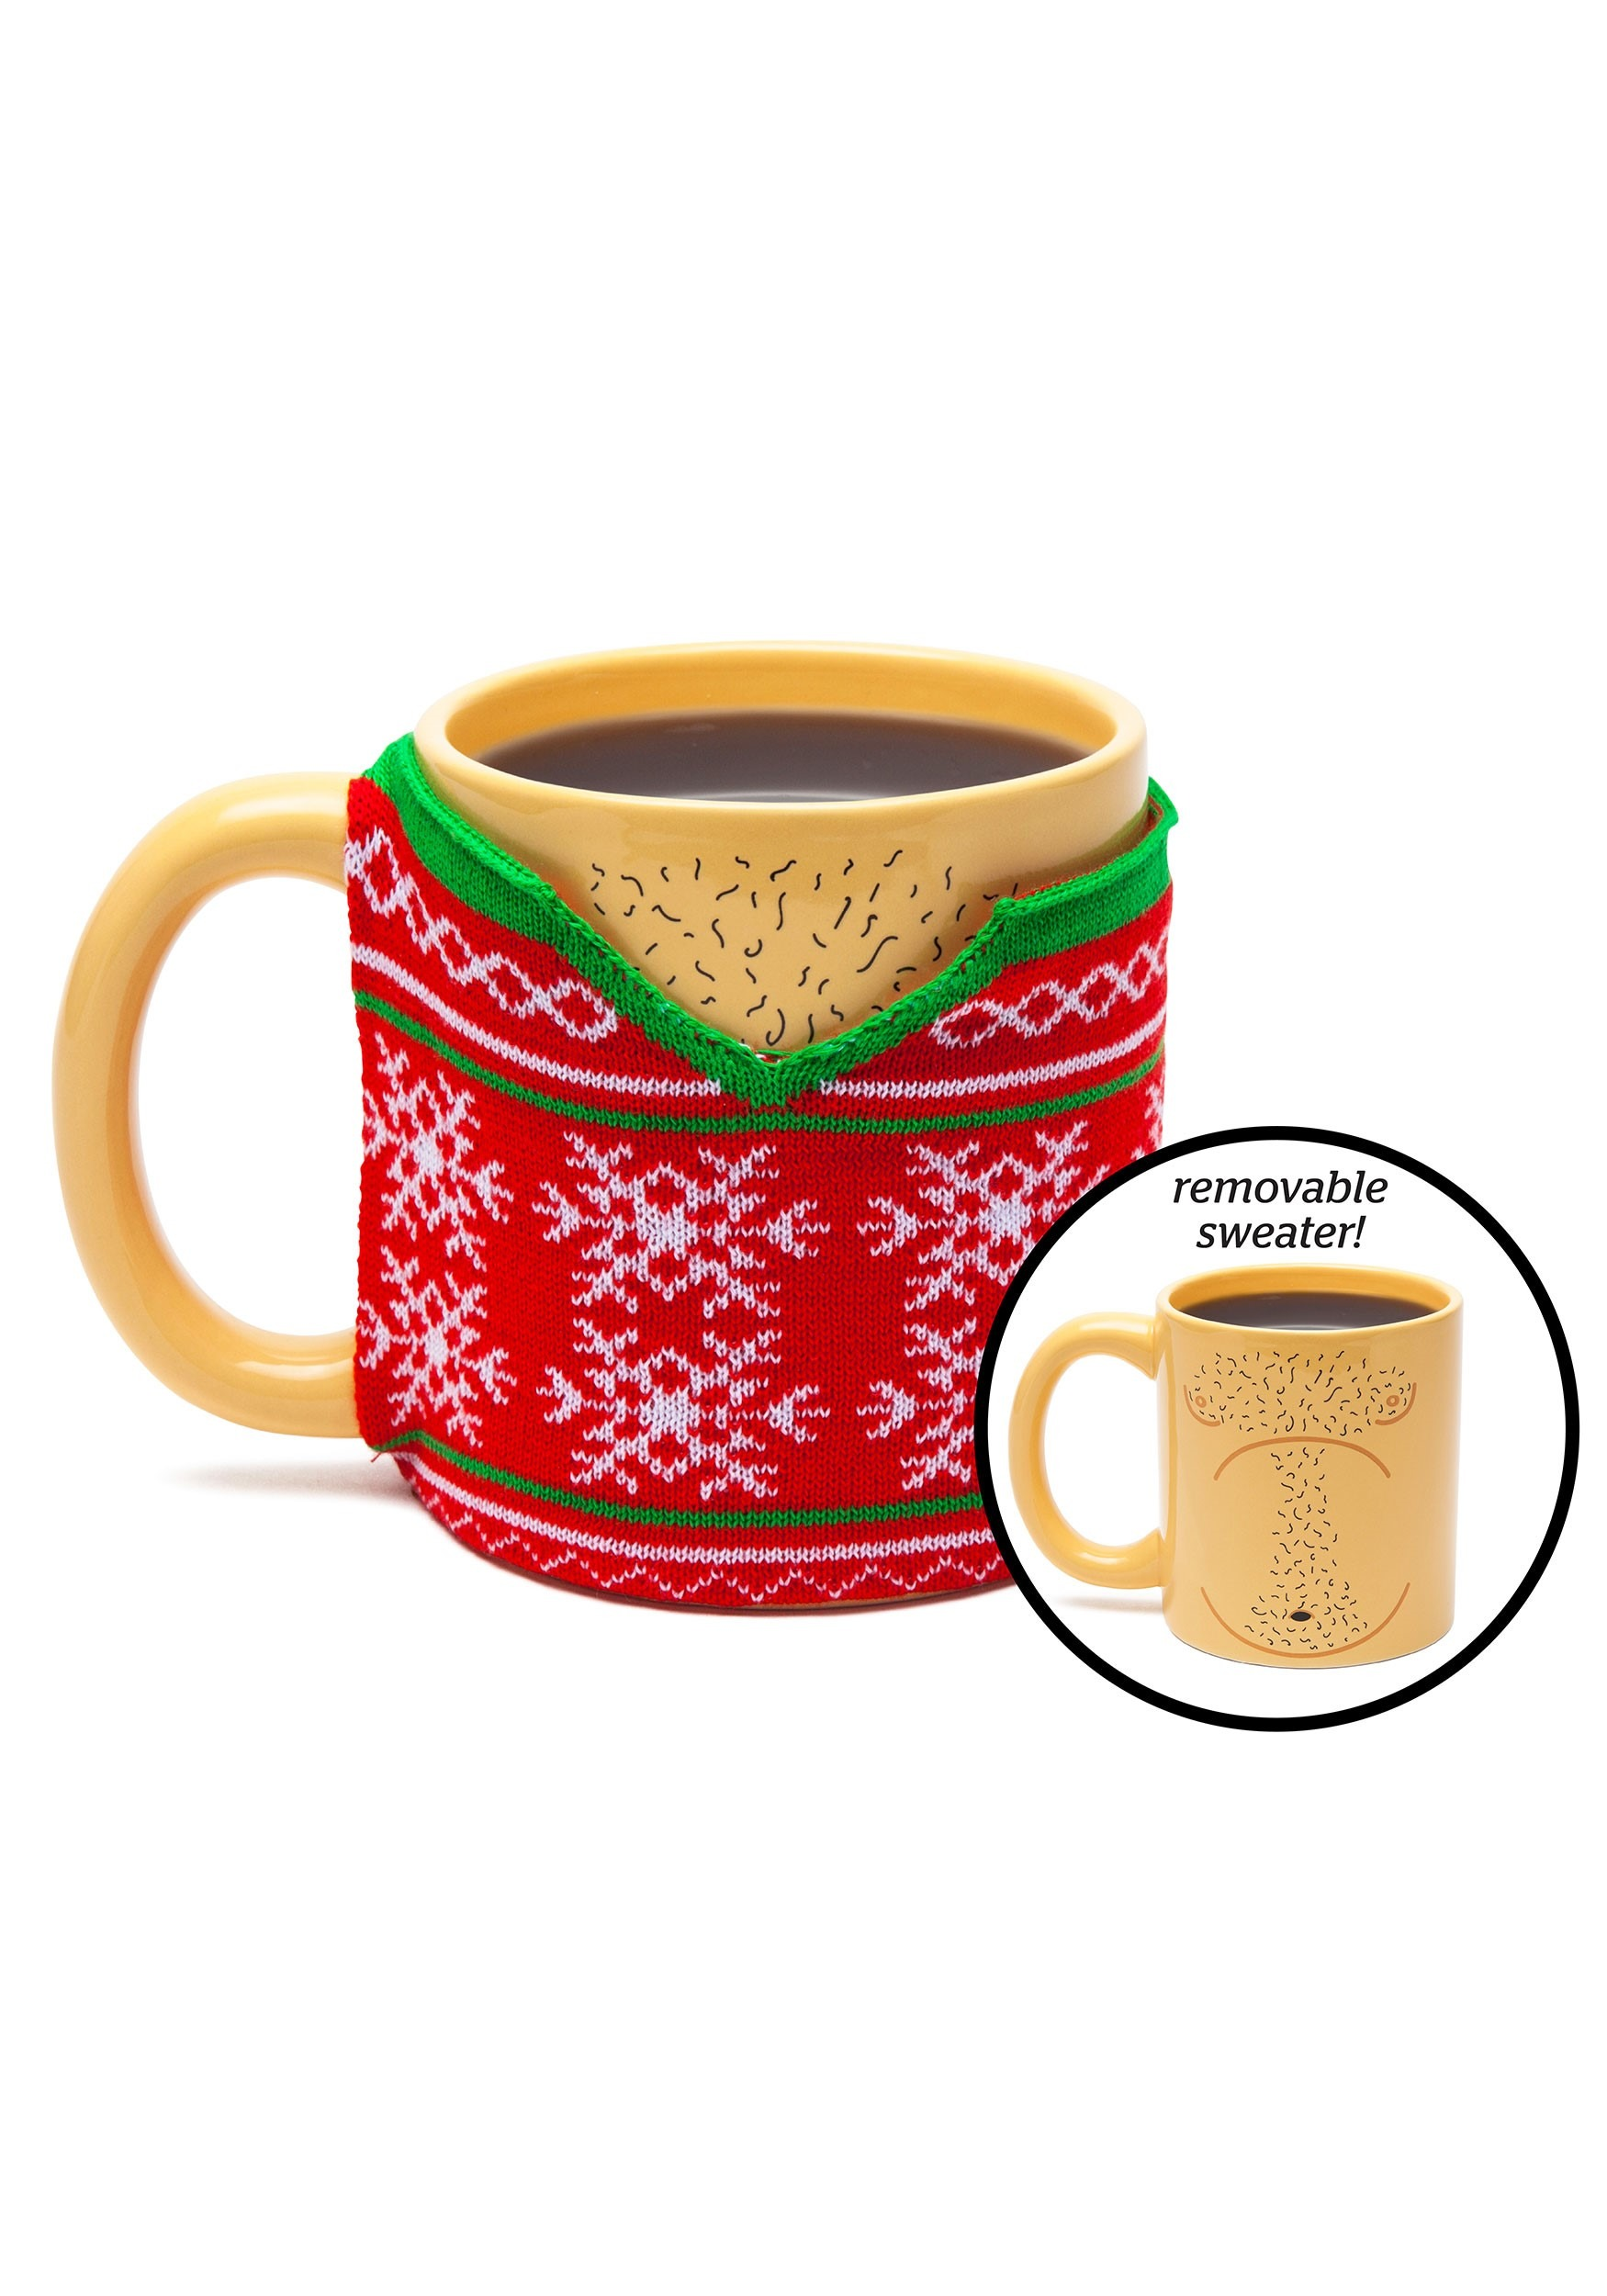 Ugly Sweater w// removable Sweater Mug Adult